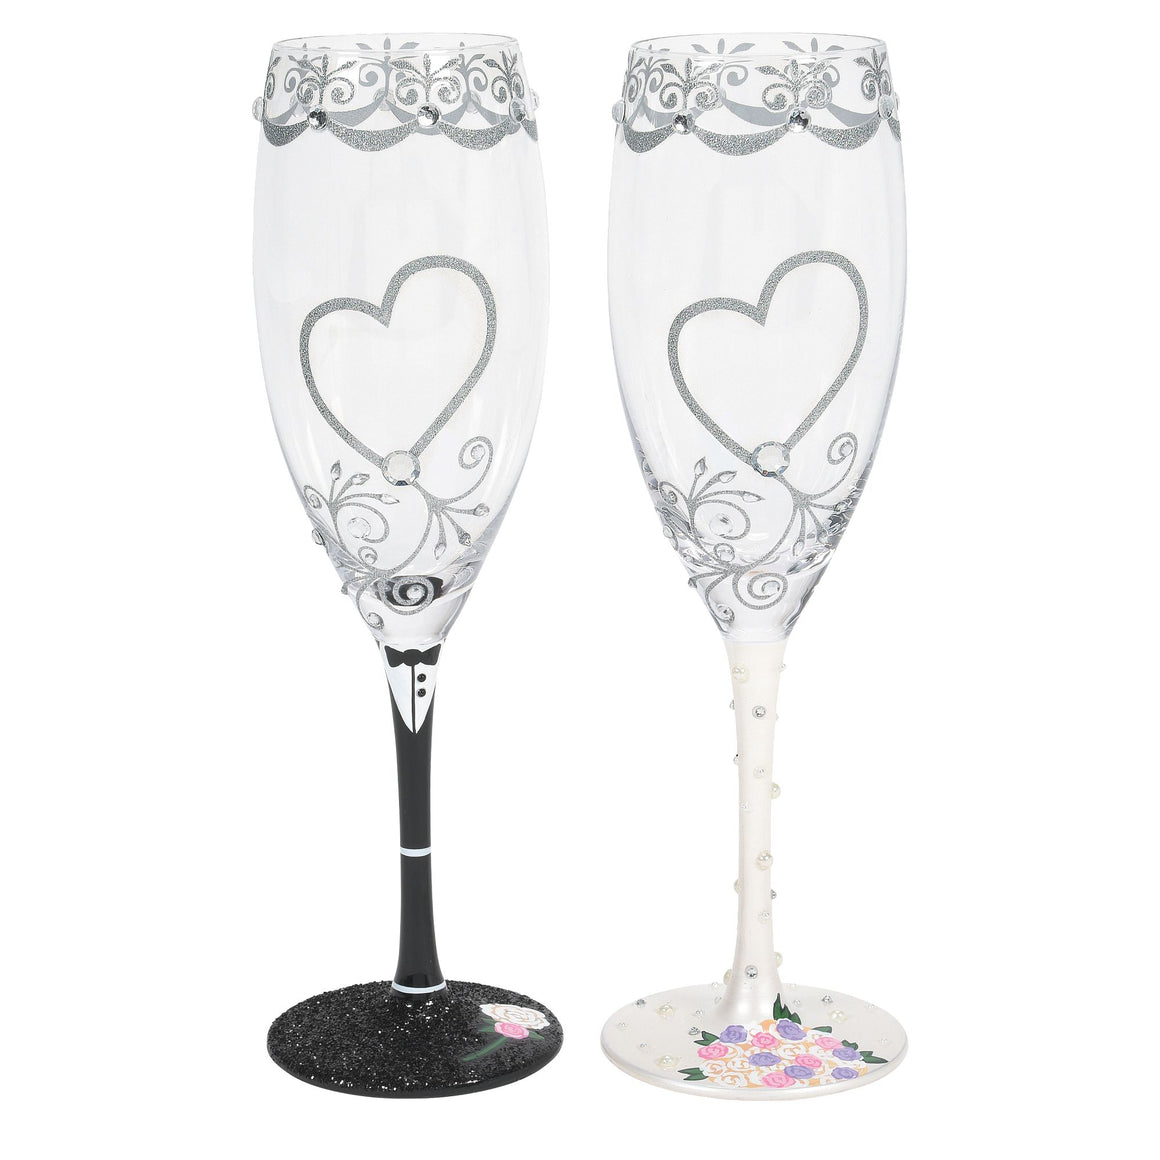 Mr & Mrs Toasting Glasses Set (Set 2)